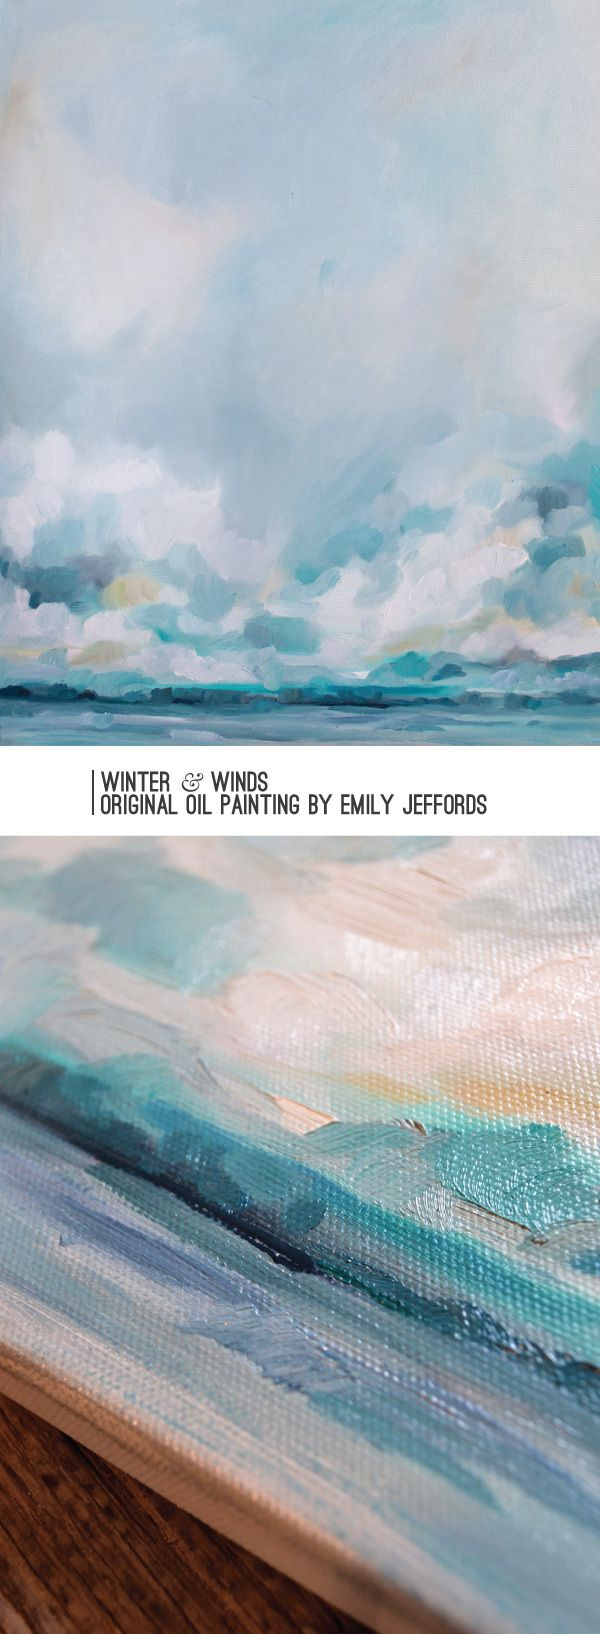 Winter & Winds: Original Oil Painting by Emily Jeffords, painting-a-day